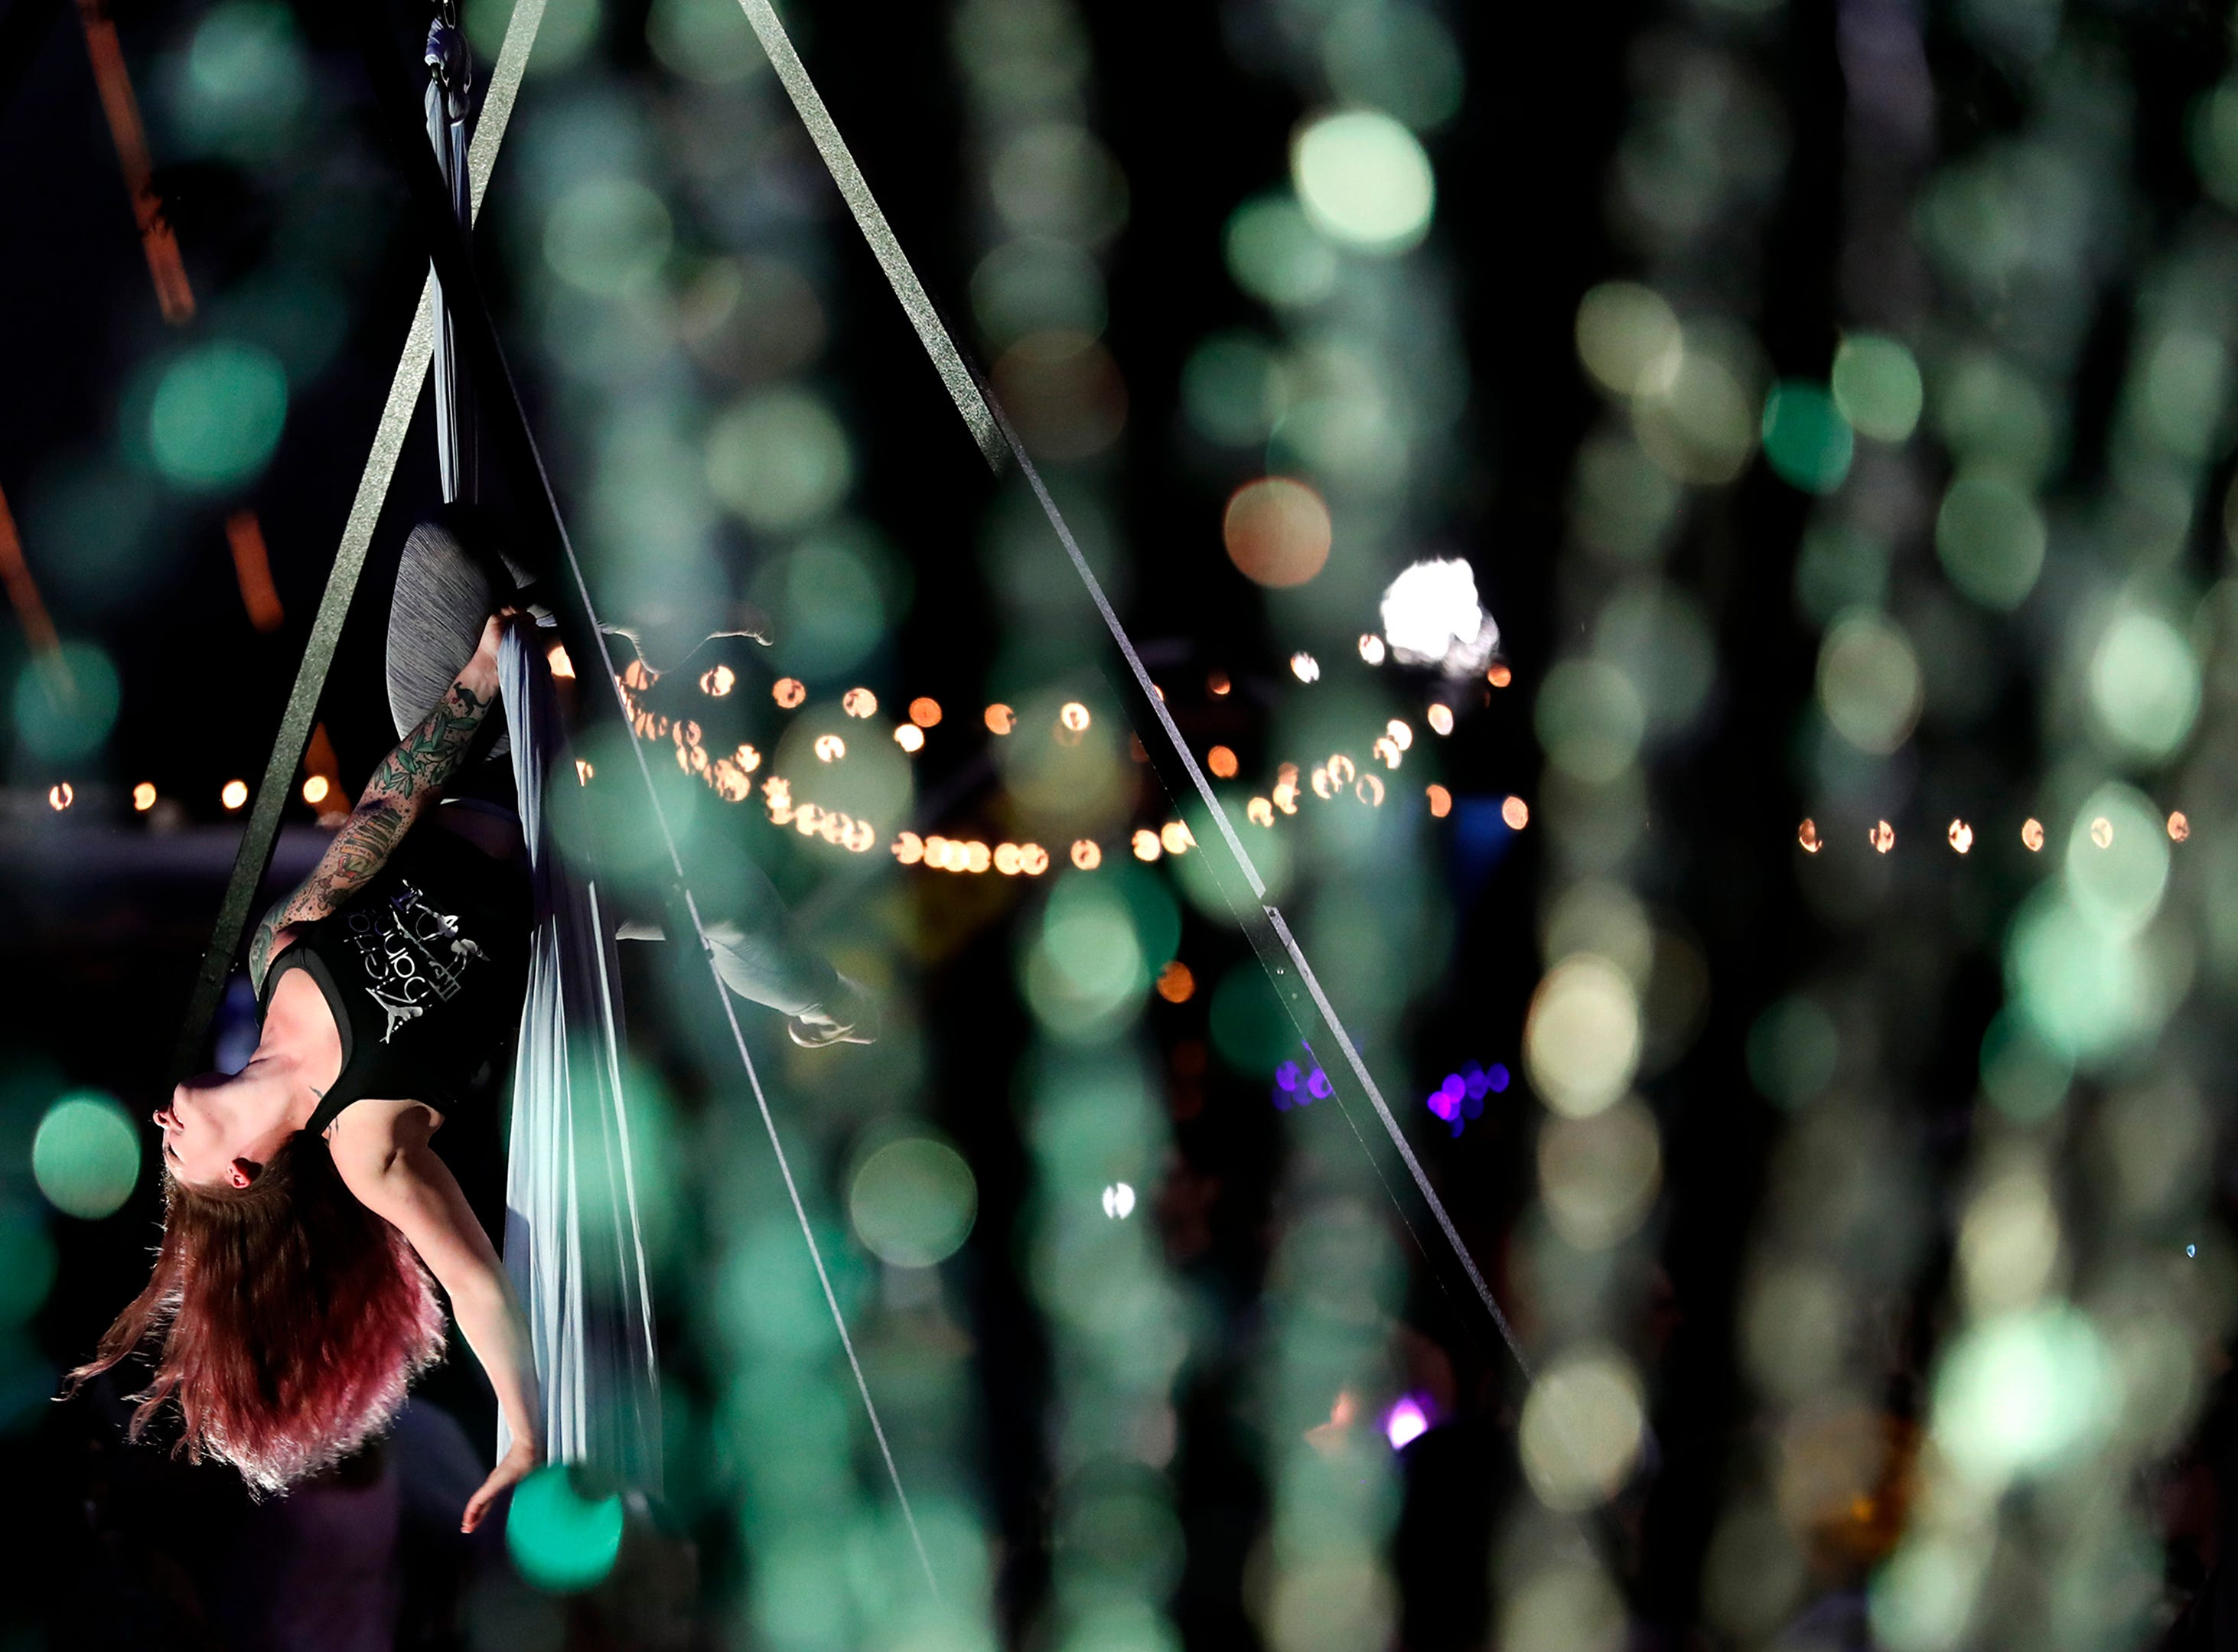 A fountain in downtown Menasha is lit with green light as Olivia Oswalt, an instructor with Aerial Dance, performs during Bazaar After Dark Wednesday, Sept. 12, 2018, in Menasha, Wis.Danny Damiani/USA TODAY NETWORK-Wisconsin